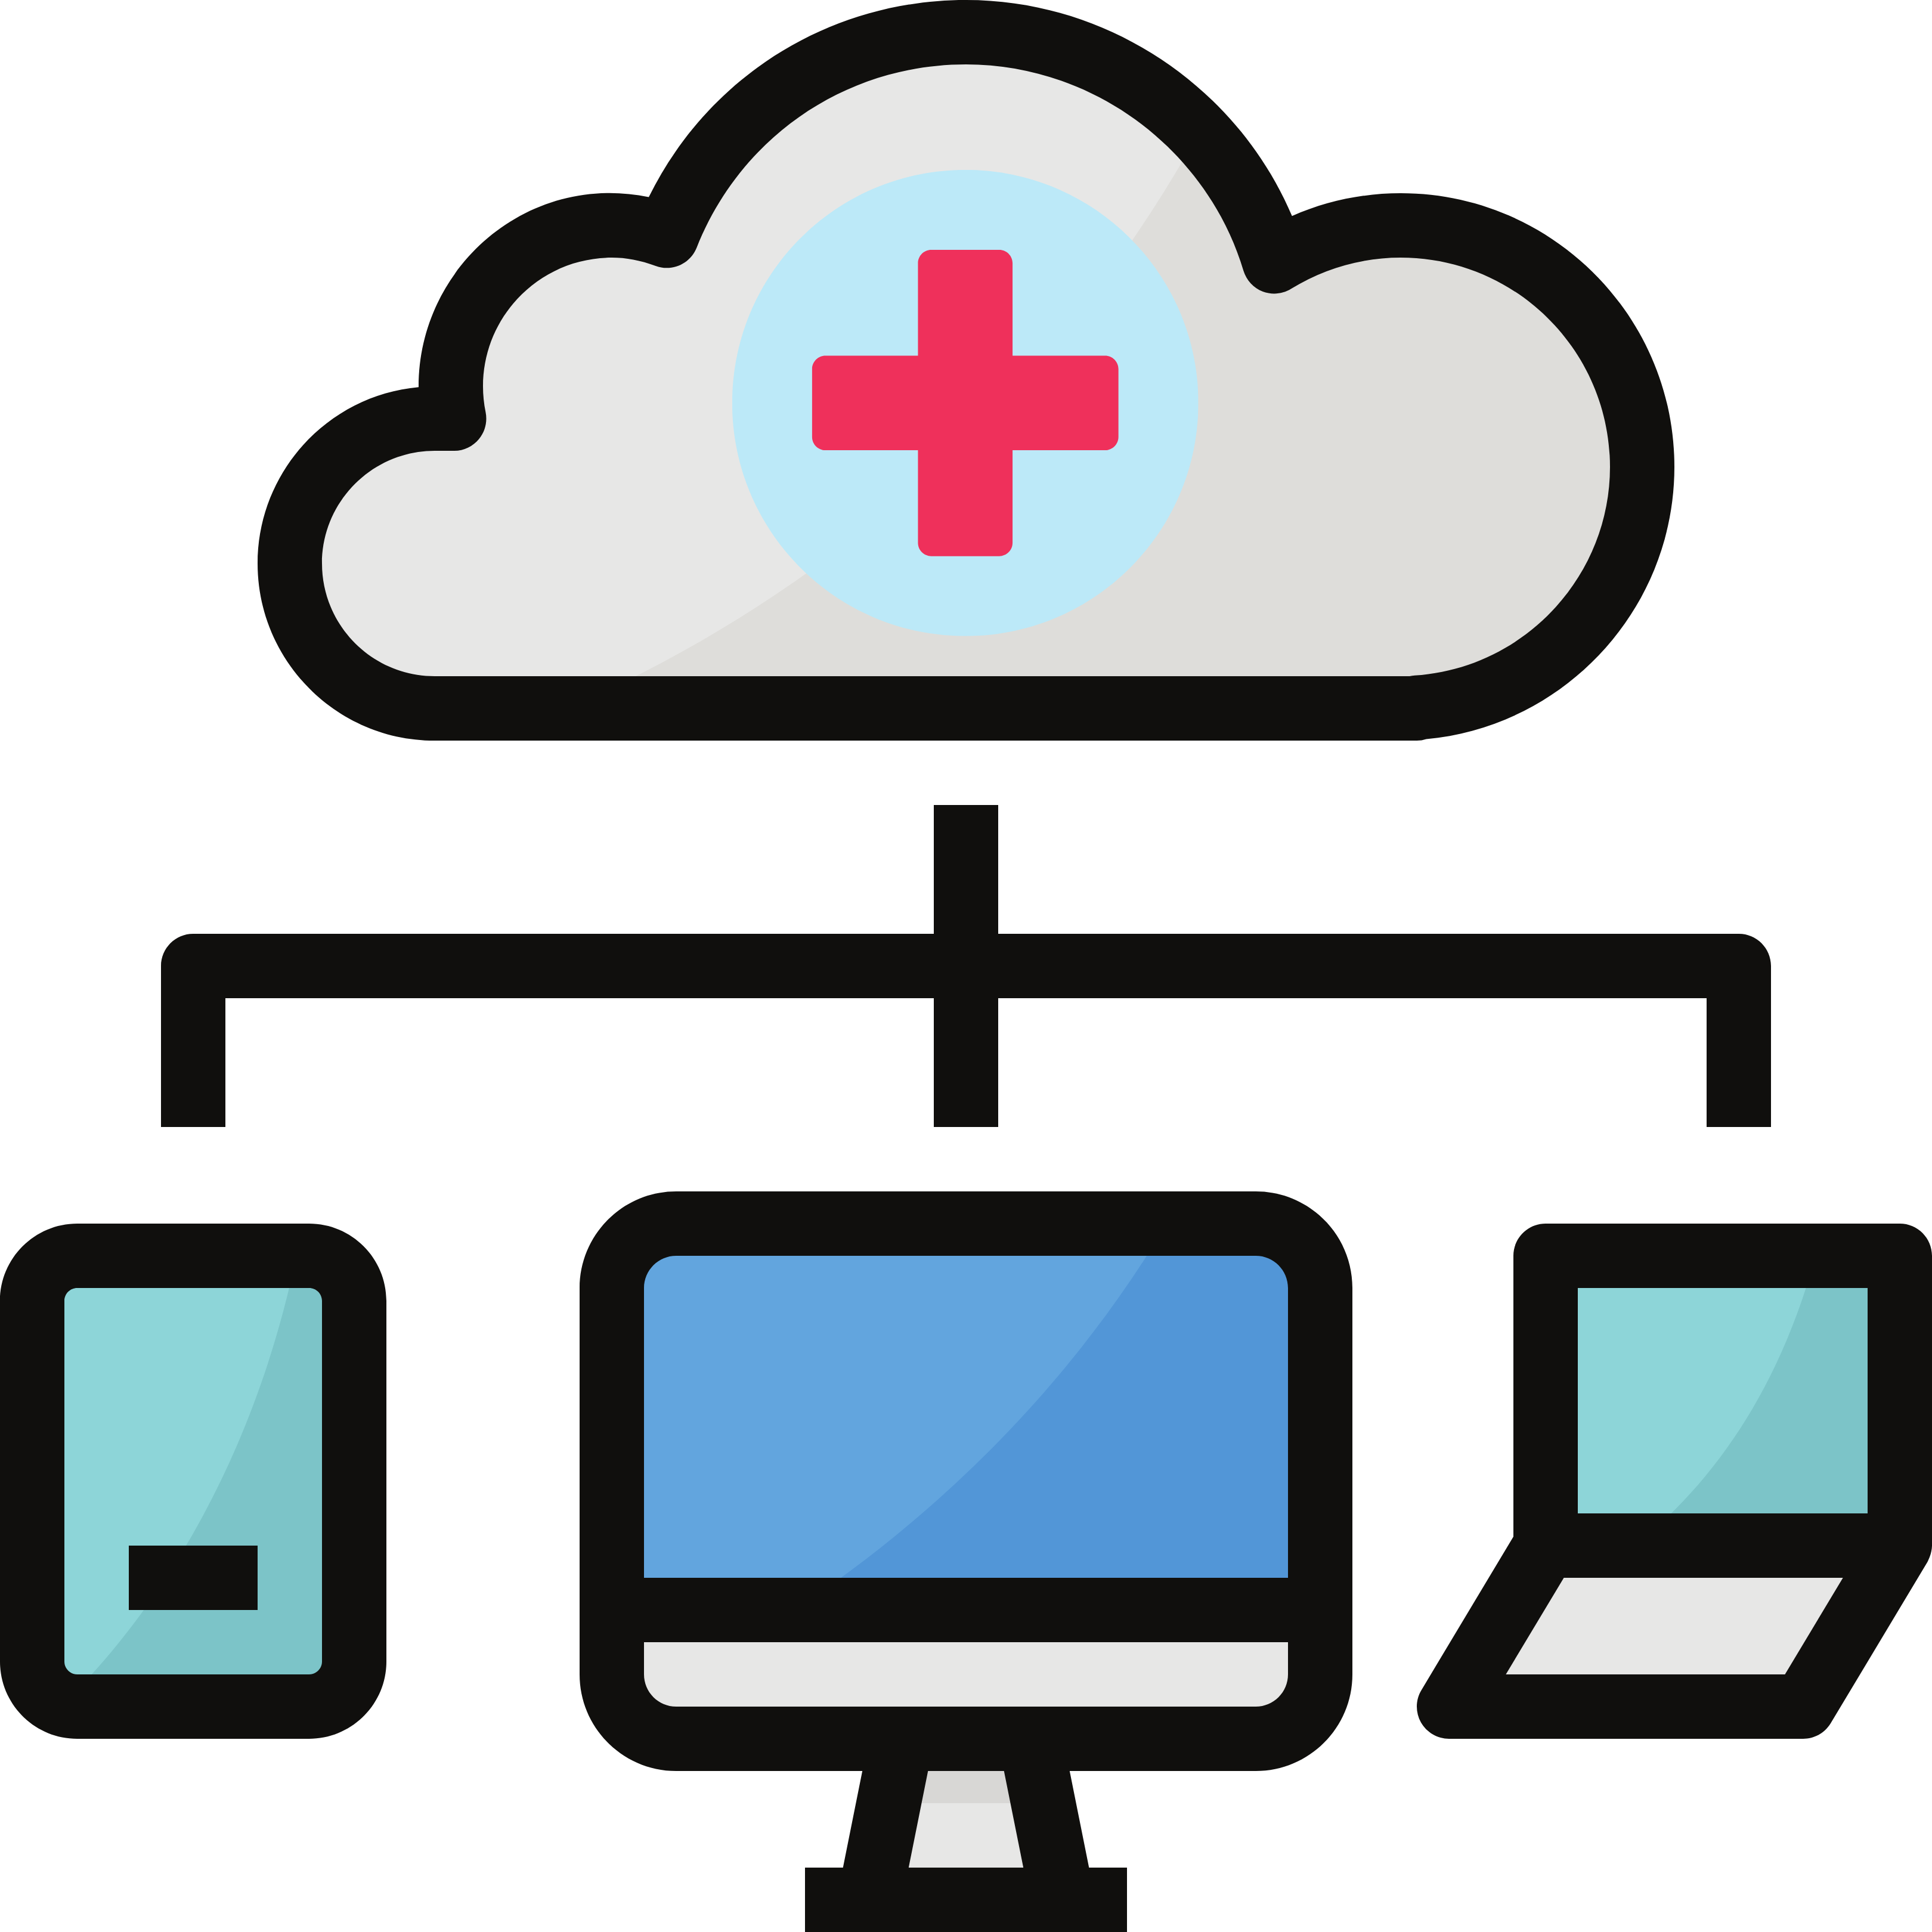 Benefits of the cloud for Healthcare: Interoperability